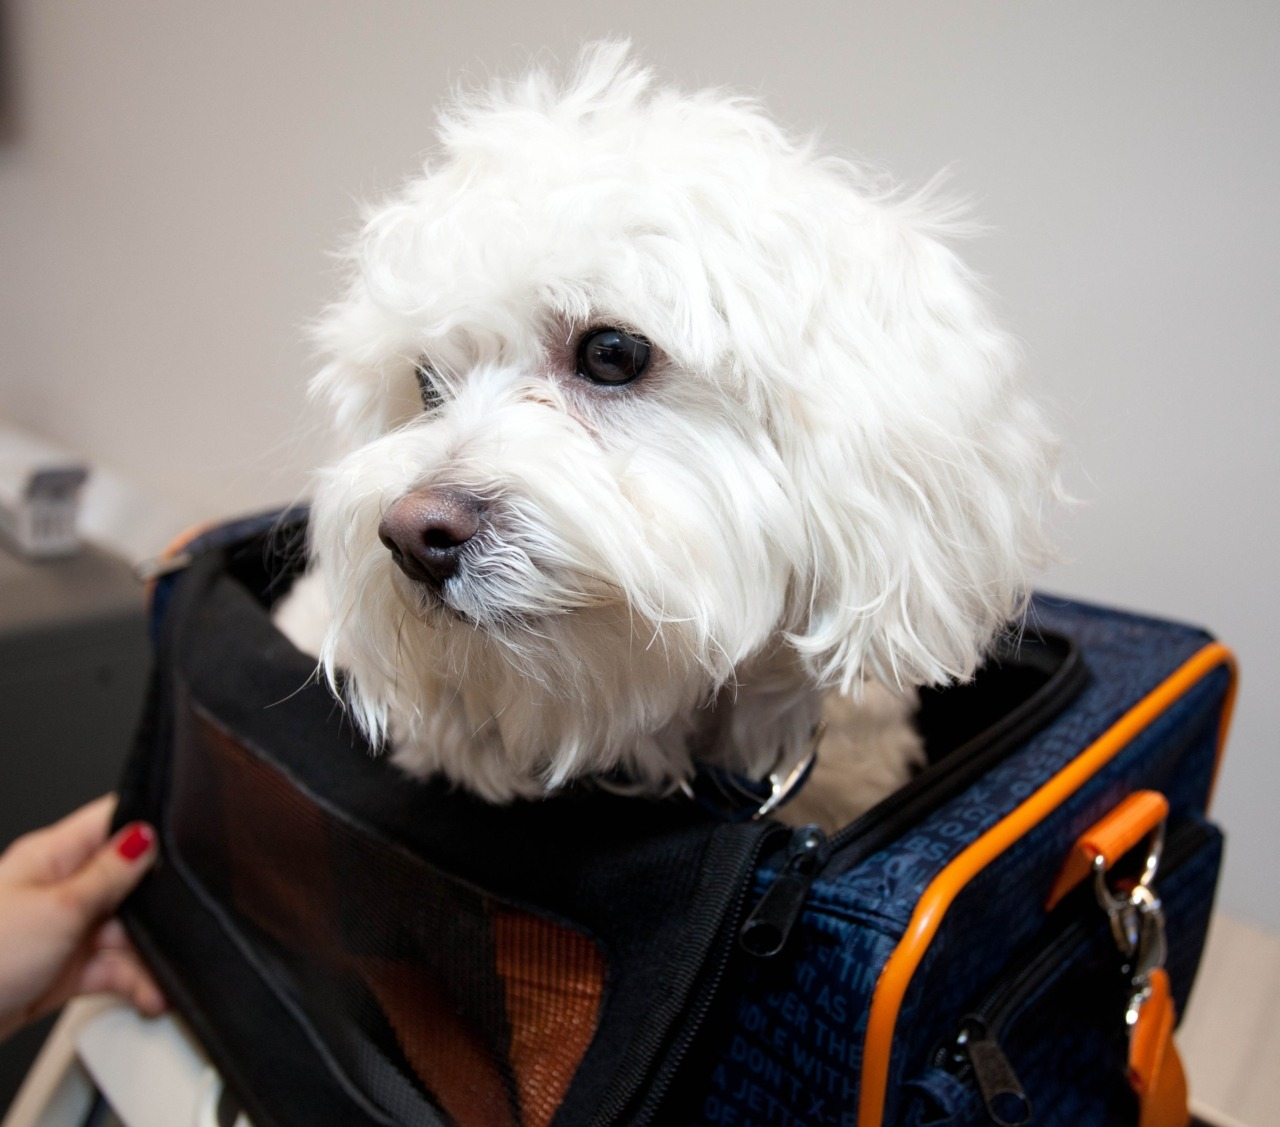 JetBlue salutes frequent flyer dog - He's the most peripatetic of pets, a Maltese poodle with a Hub connection who is now being lionized —- if it's possible for a poodle named Moose to be lionized —- as the poster dog of a new JetBlue Twitter promotion that aims to help an animal welfare foundation.